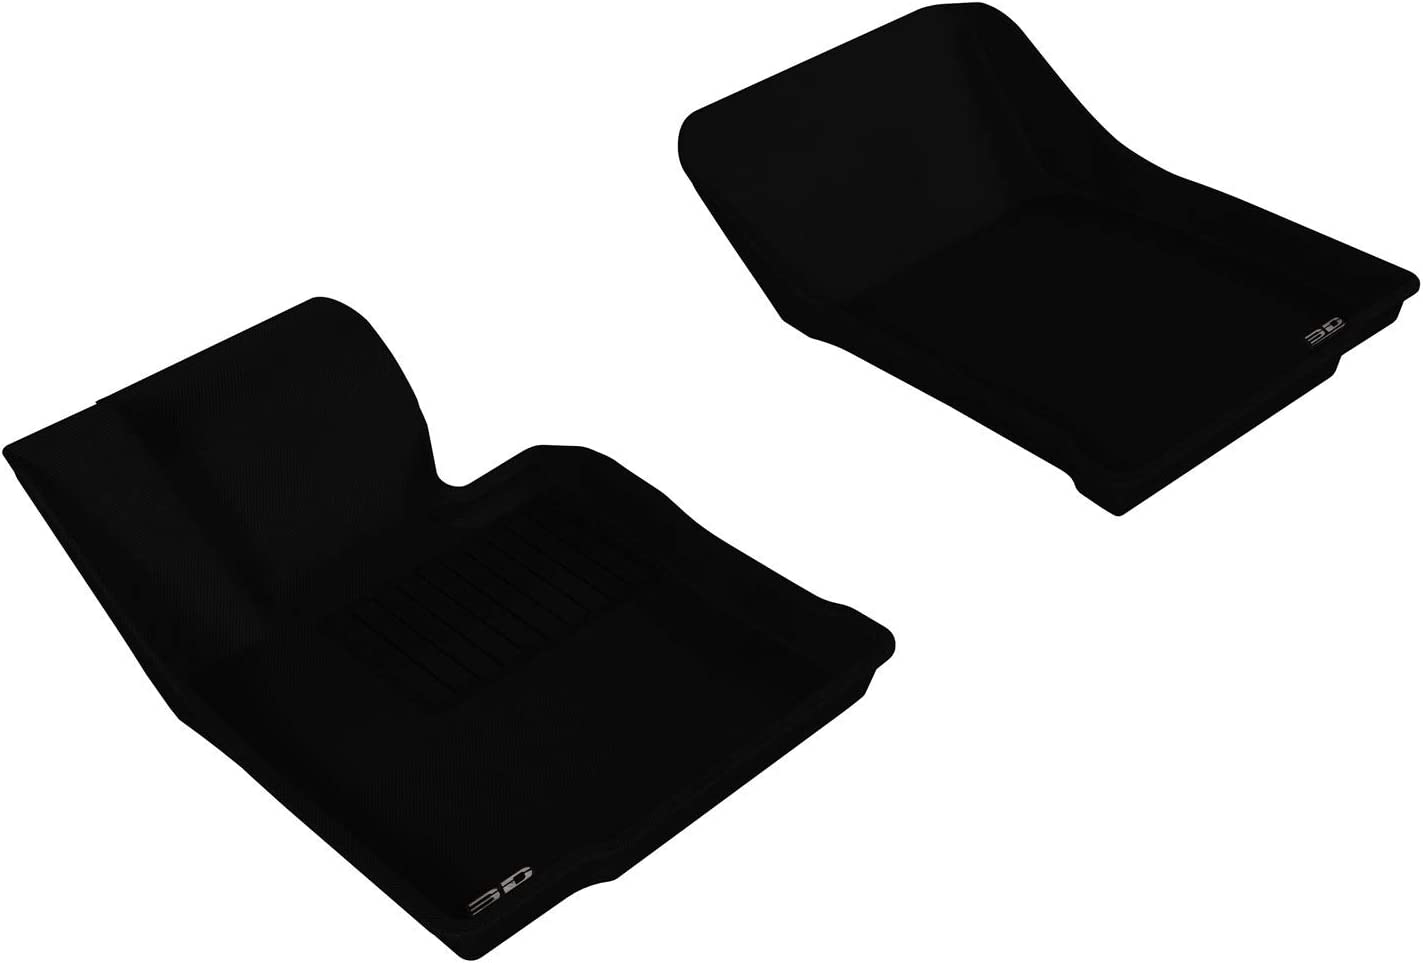 Passenger /& Rear Floor 2008 GGBAILEY D3783A-S1A-BK-LP Custom Fit Car Mats for 2006 2007 2009 Hyundai Accent Sedan Black Loop Driver